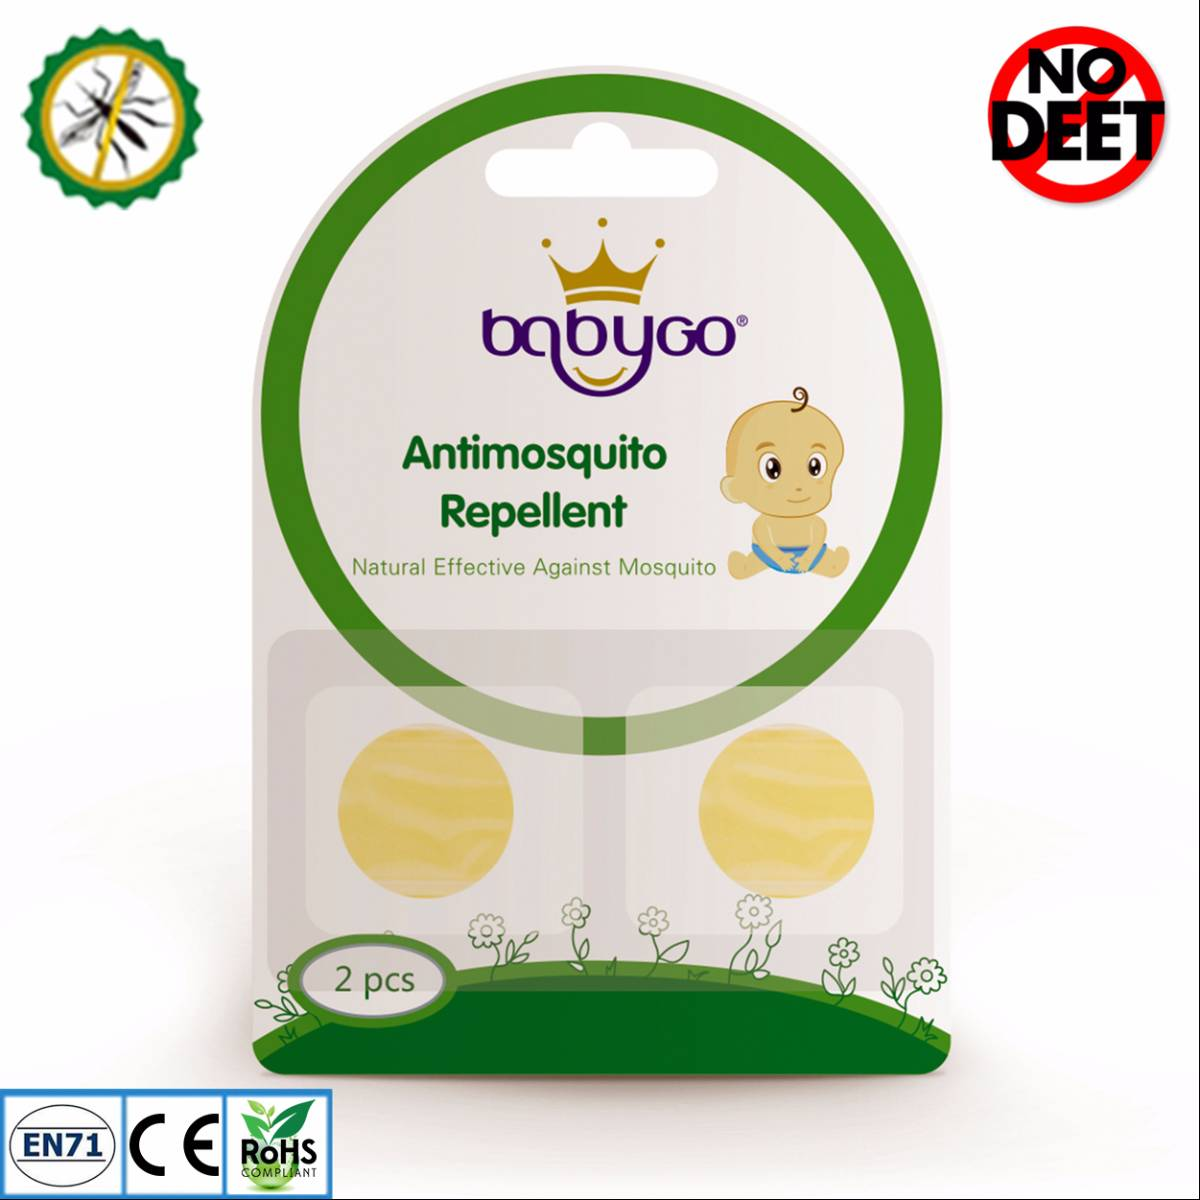 Babygo Refill Smiley Mosquito Repellent (isi Ulang Anti Nyamuk)